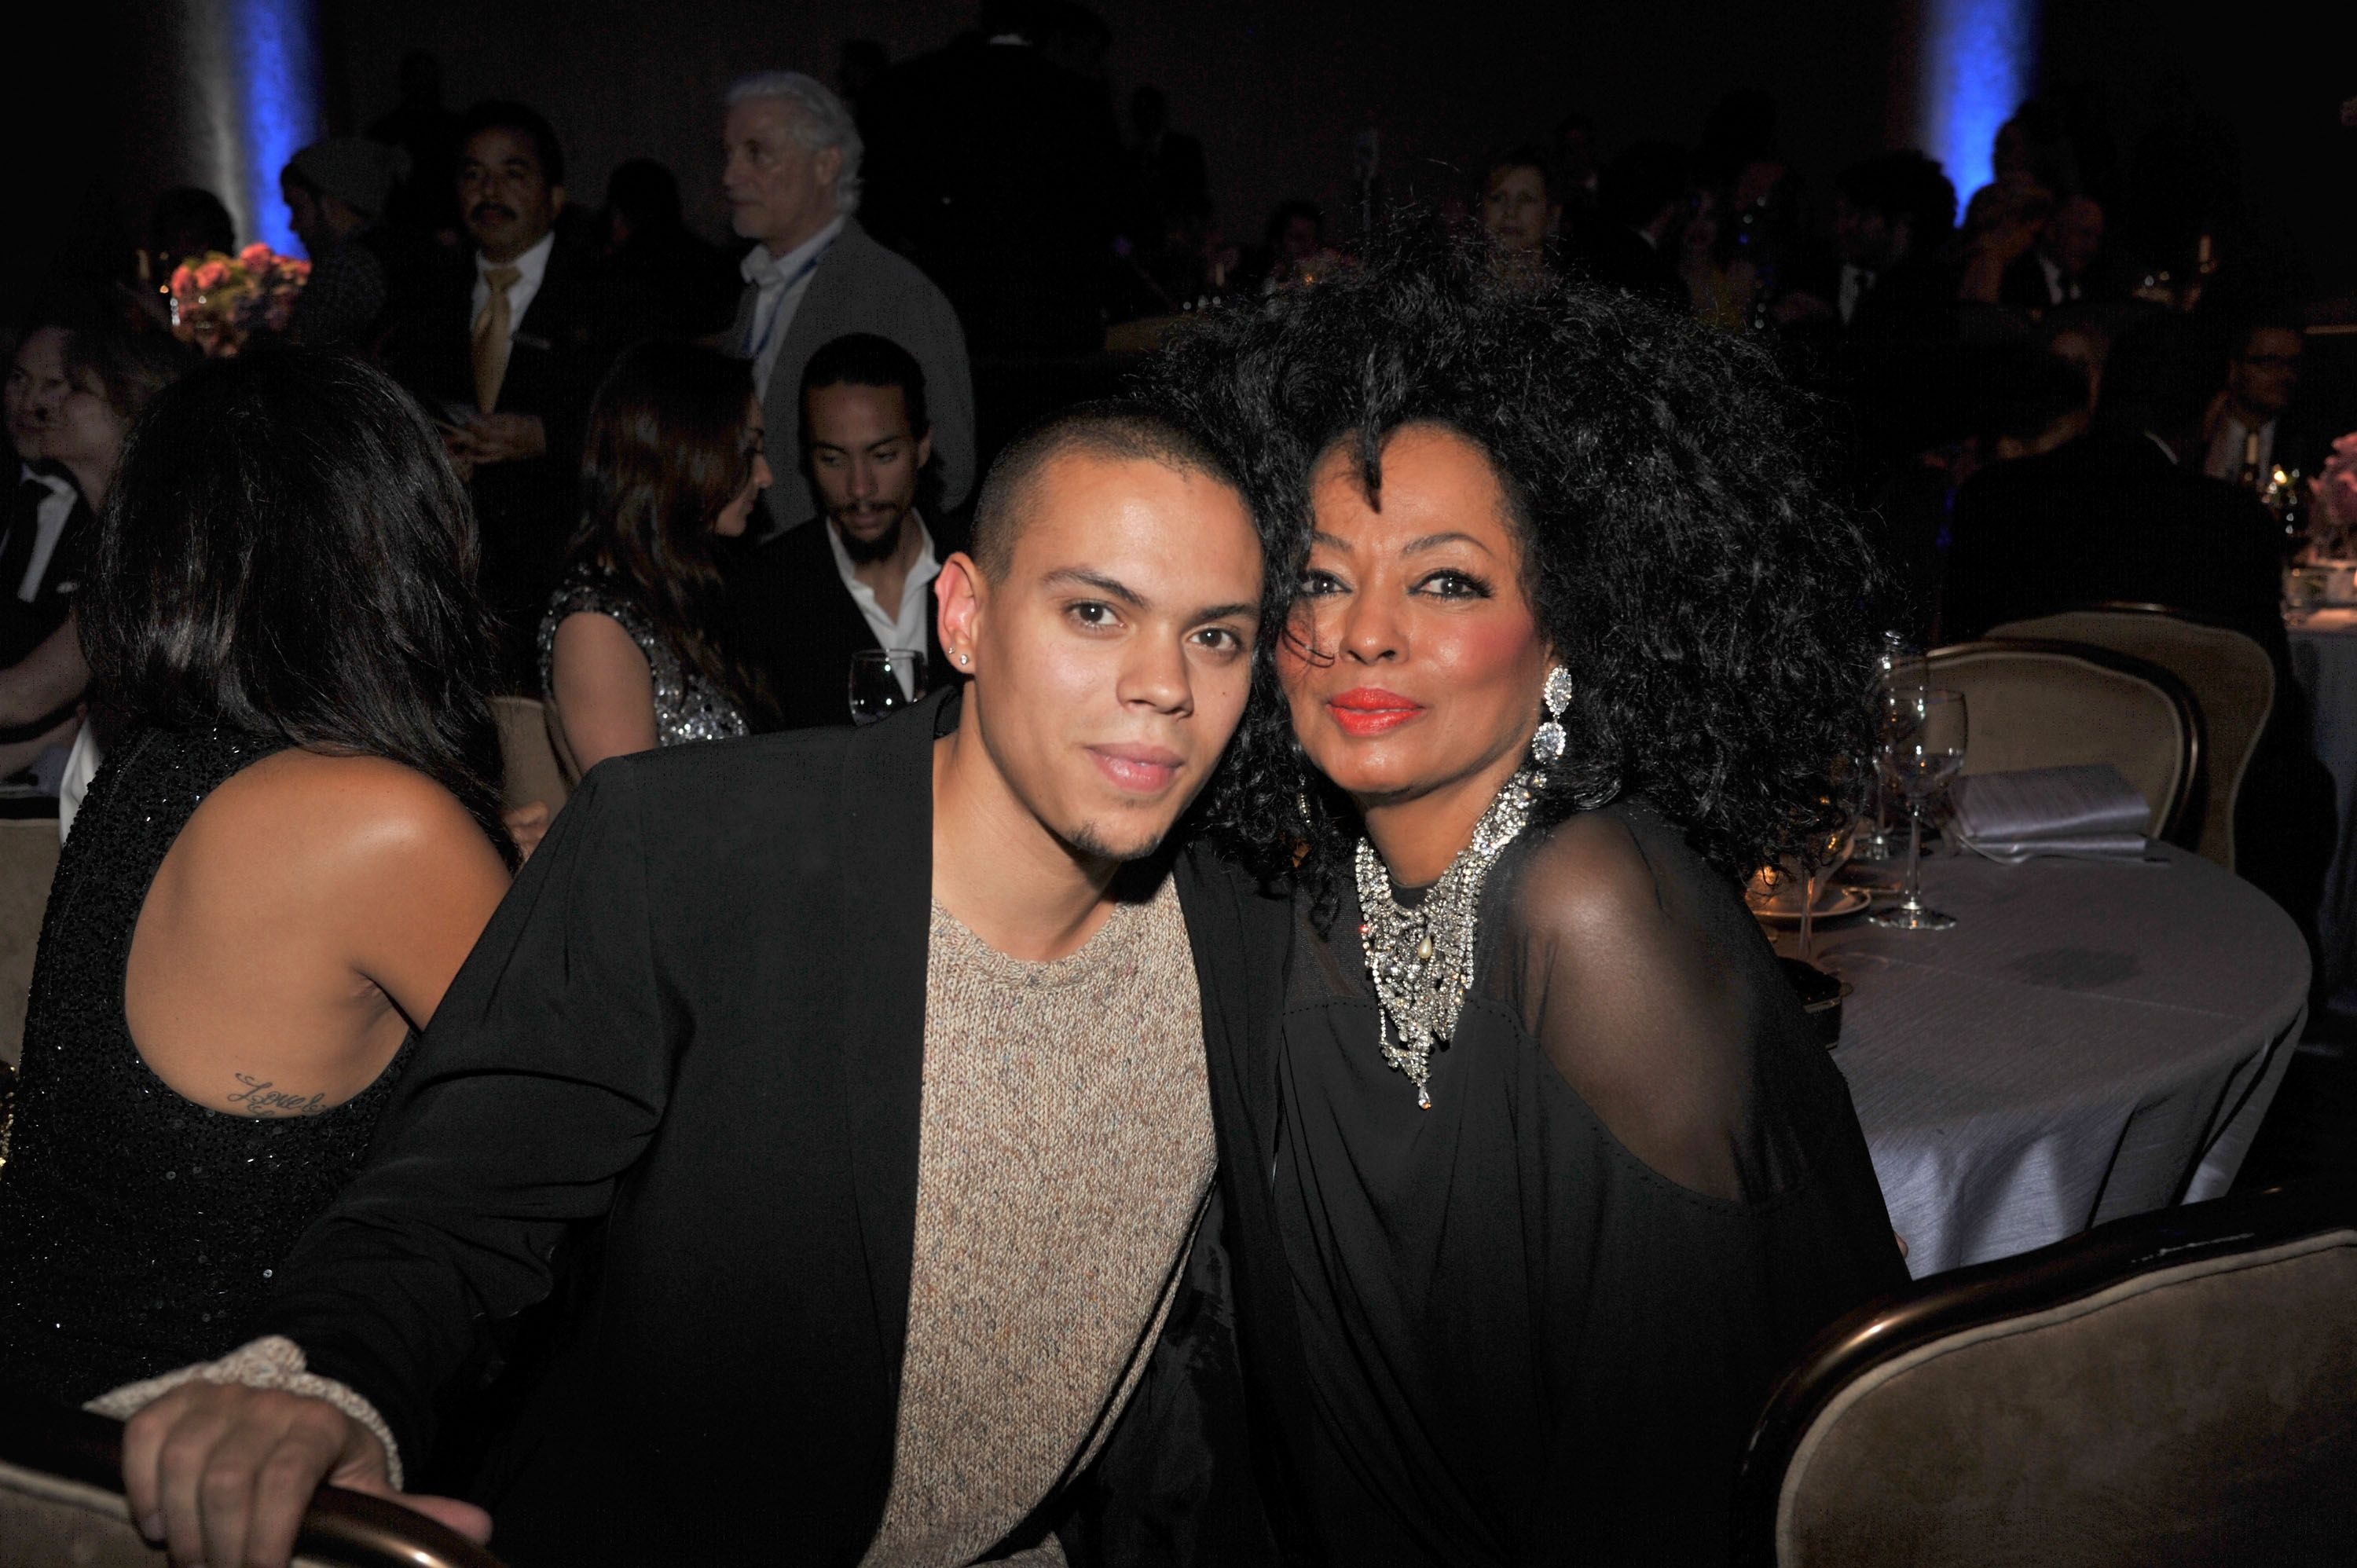 Evan Ross and mom Diana Ross attend Clive Davis and The Recording Academy's 2012 Pre-Grammy Gala and Salute to Industry Icons at The Beverly Hilton hotel on February 11, 2012 in California. | Photo: Getty Images